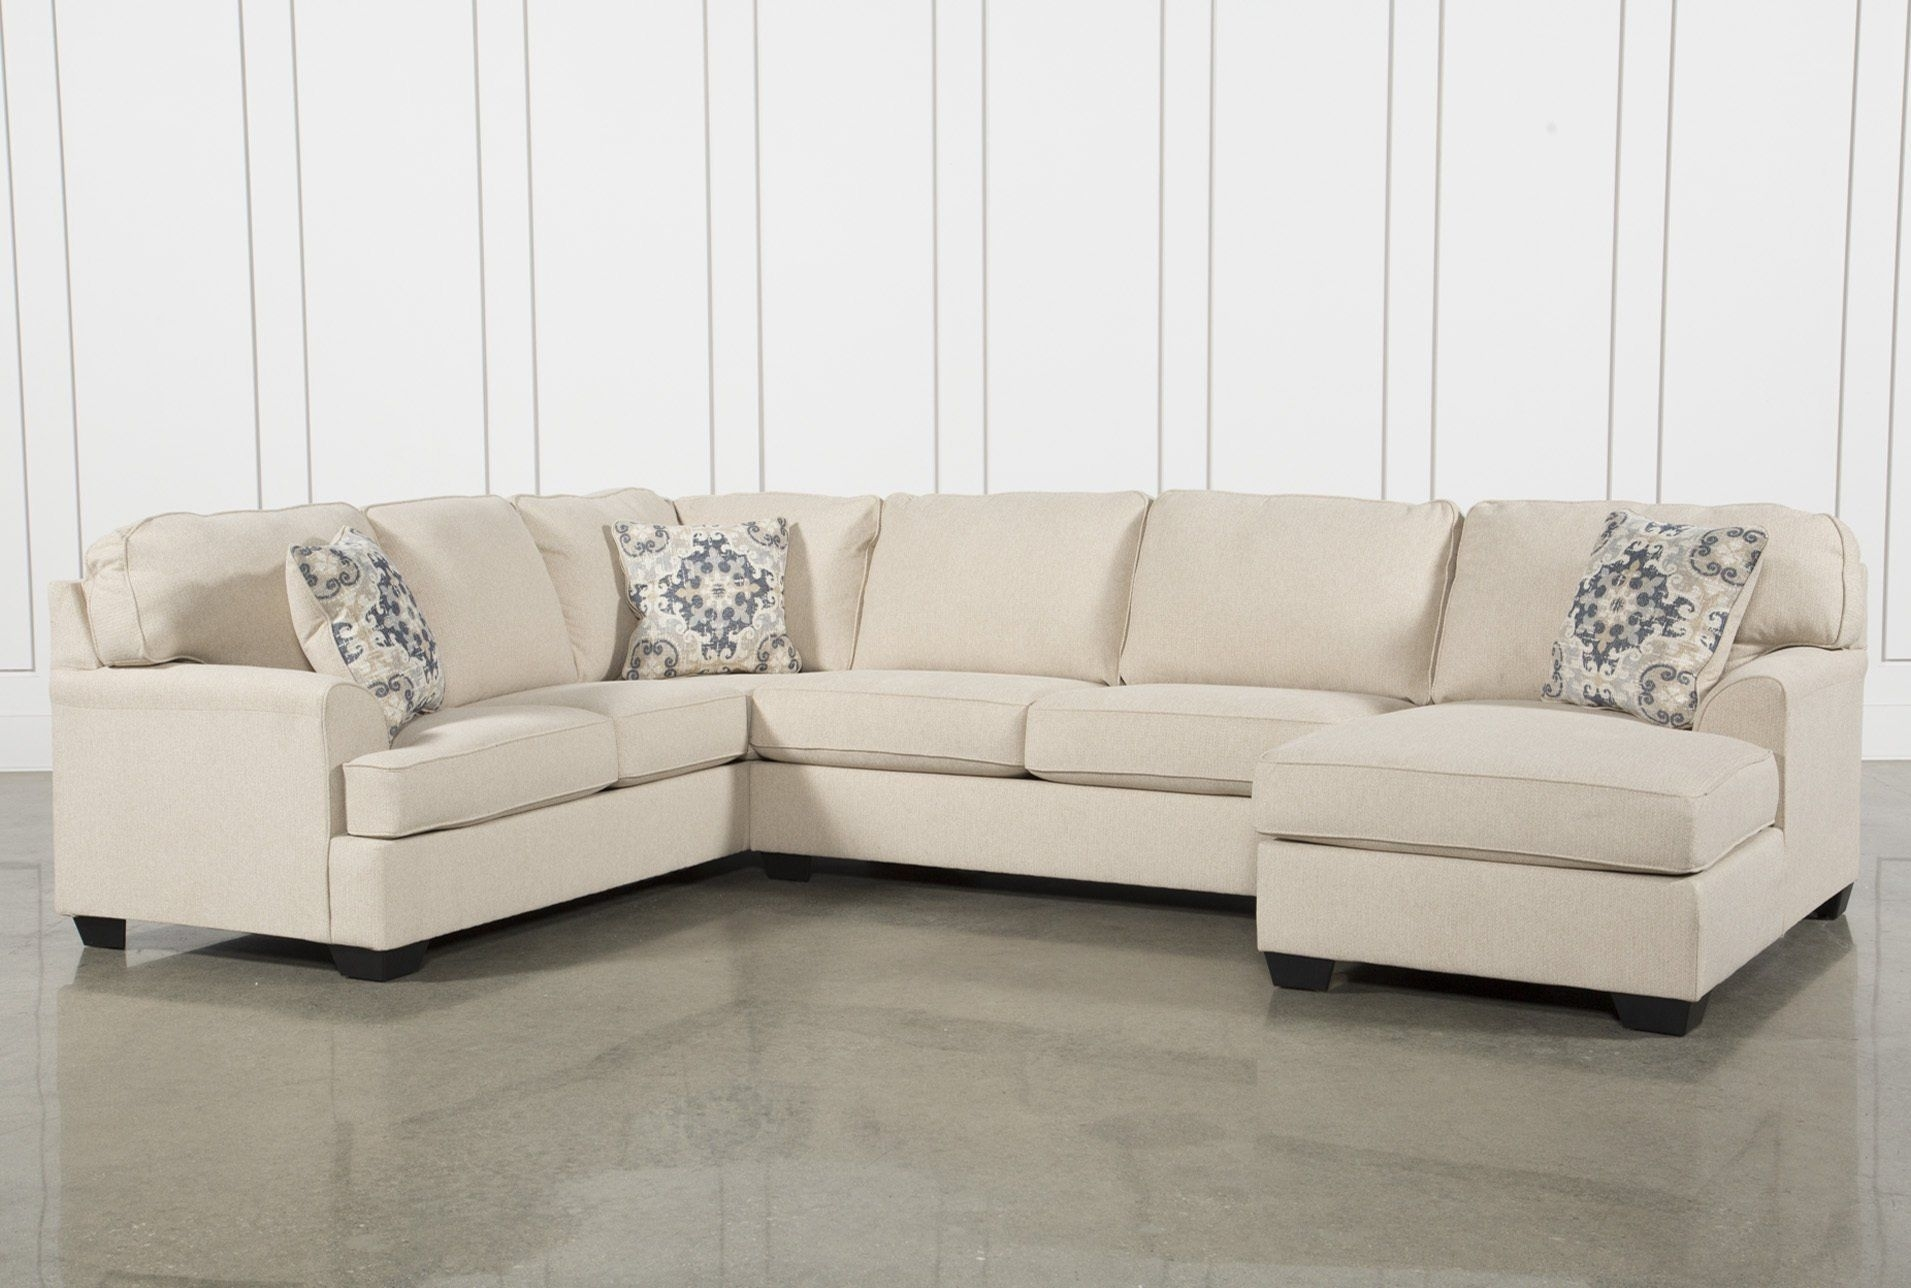 Malbry Point 3 Piece Sectional W/raf Chaise | Pinterest | Products for Arrowmask 2 Piece Sectionals With Raf Chaise (Image 23 of 30)